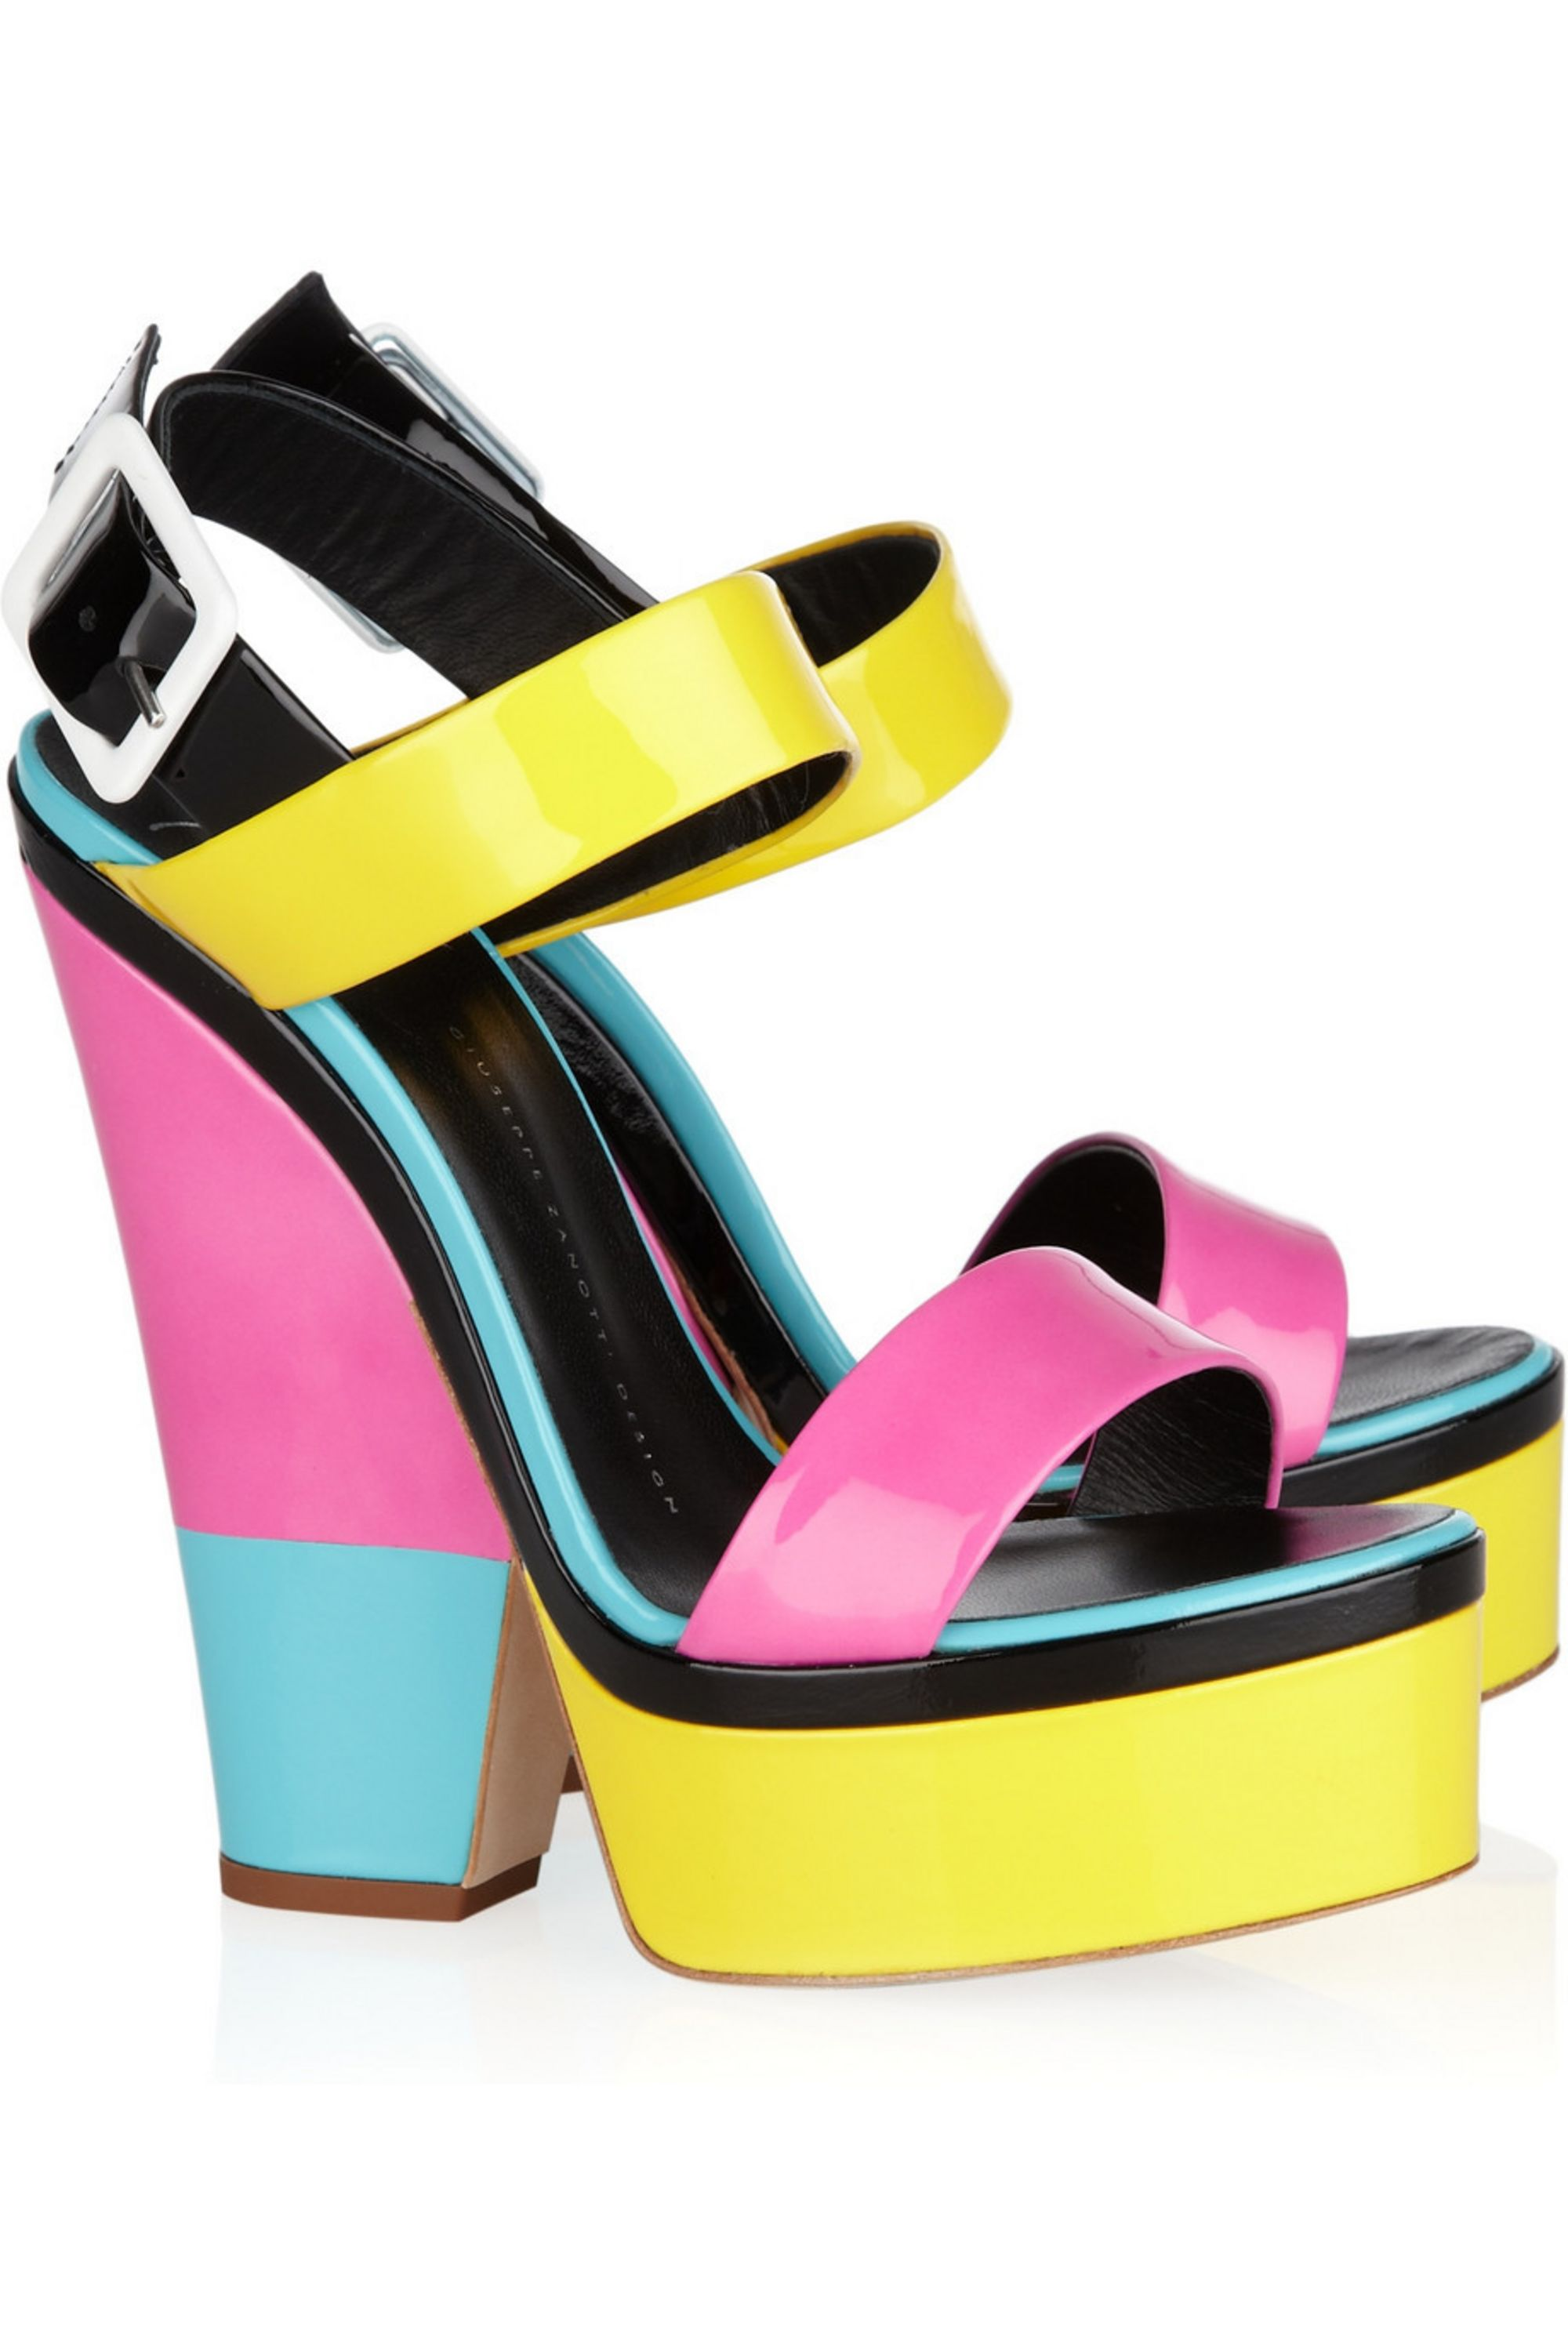 Giuseppe Zanotti Color-block patent-leather platform sandals